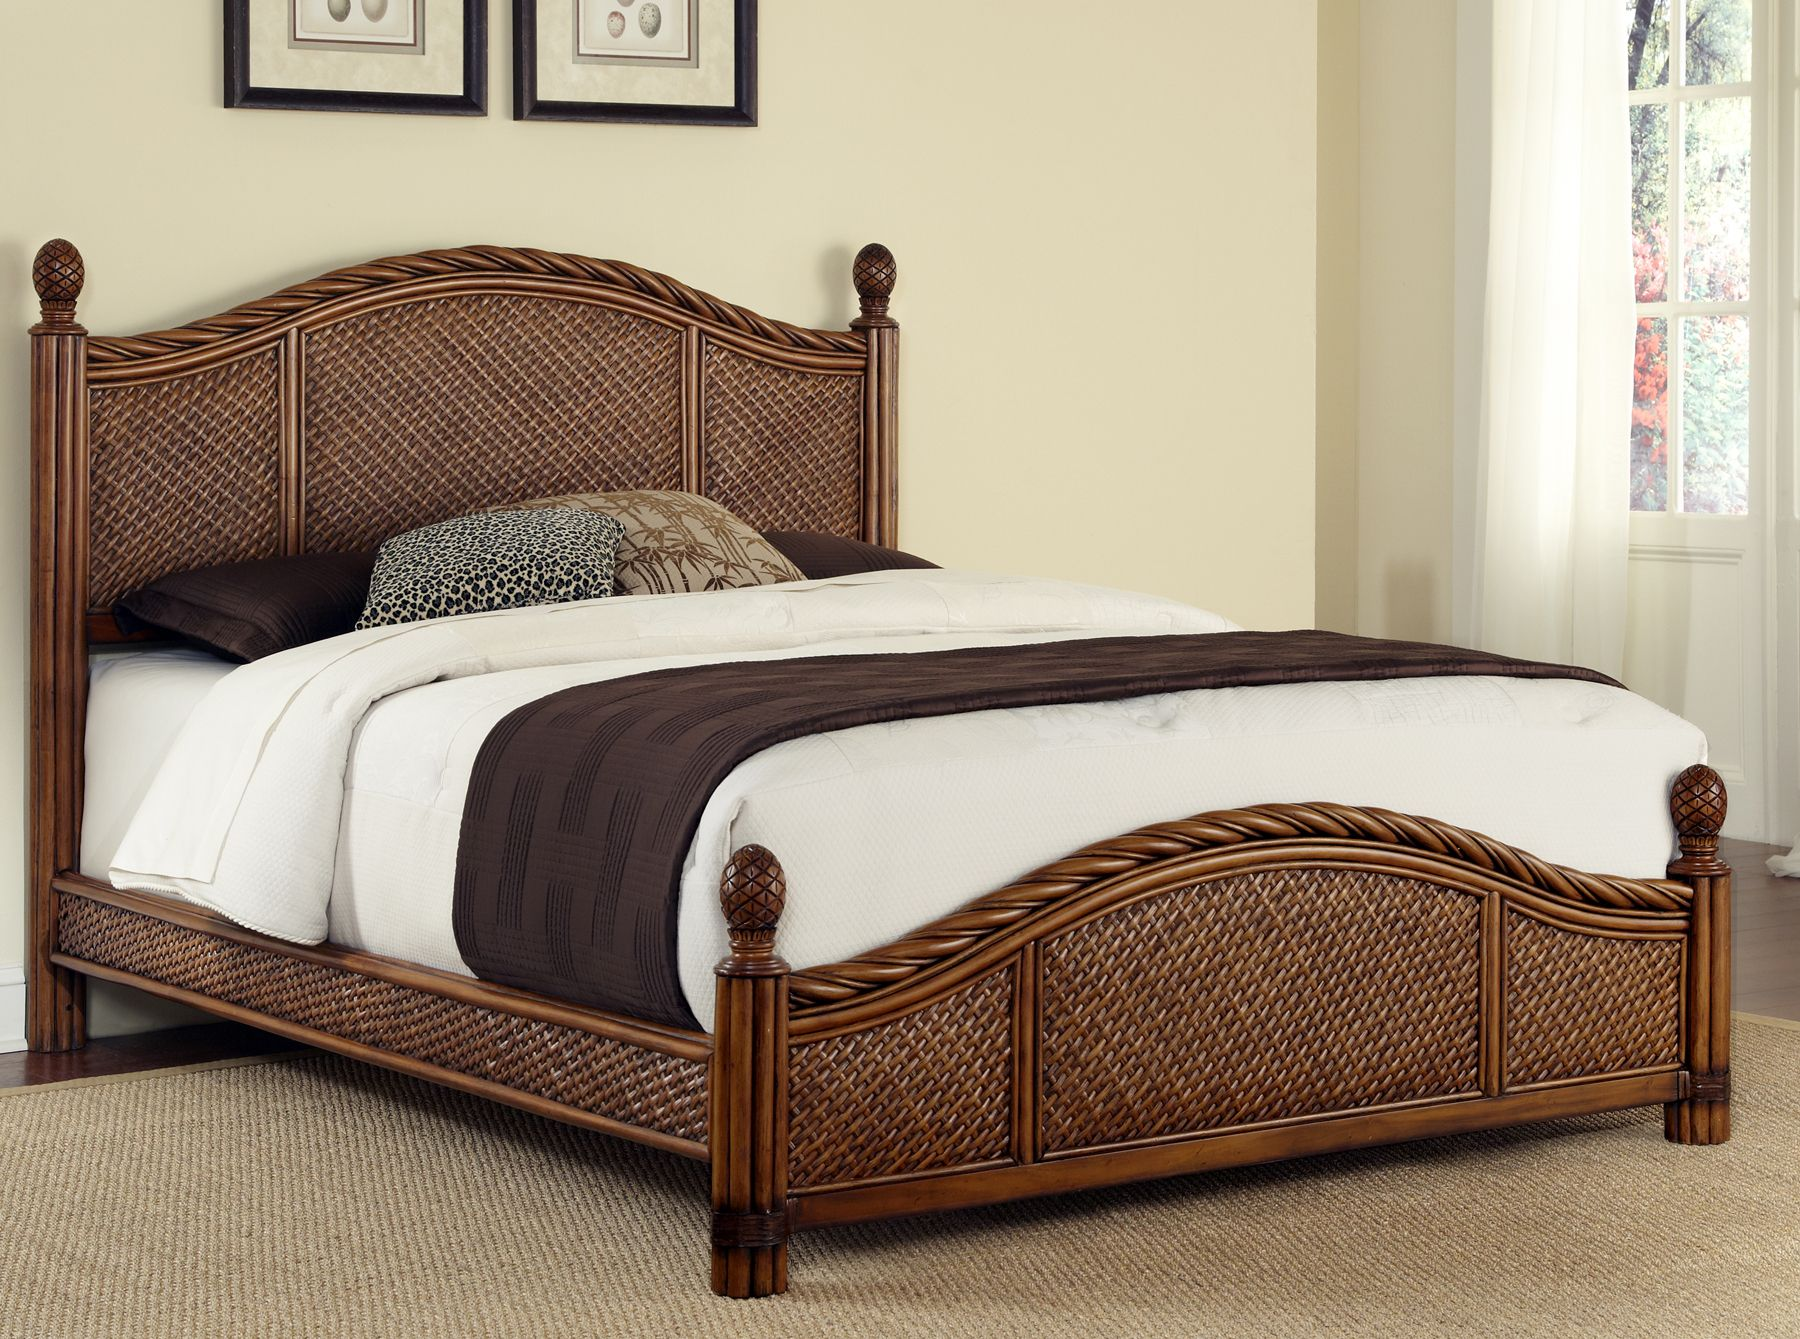 cane sofa cost in hyderabad sagging support australia home styles marco island king bed